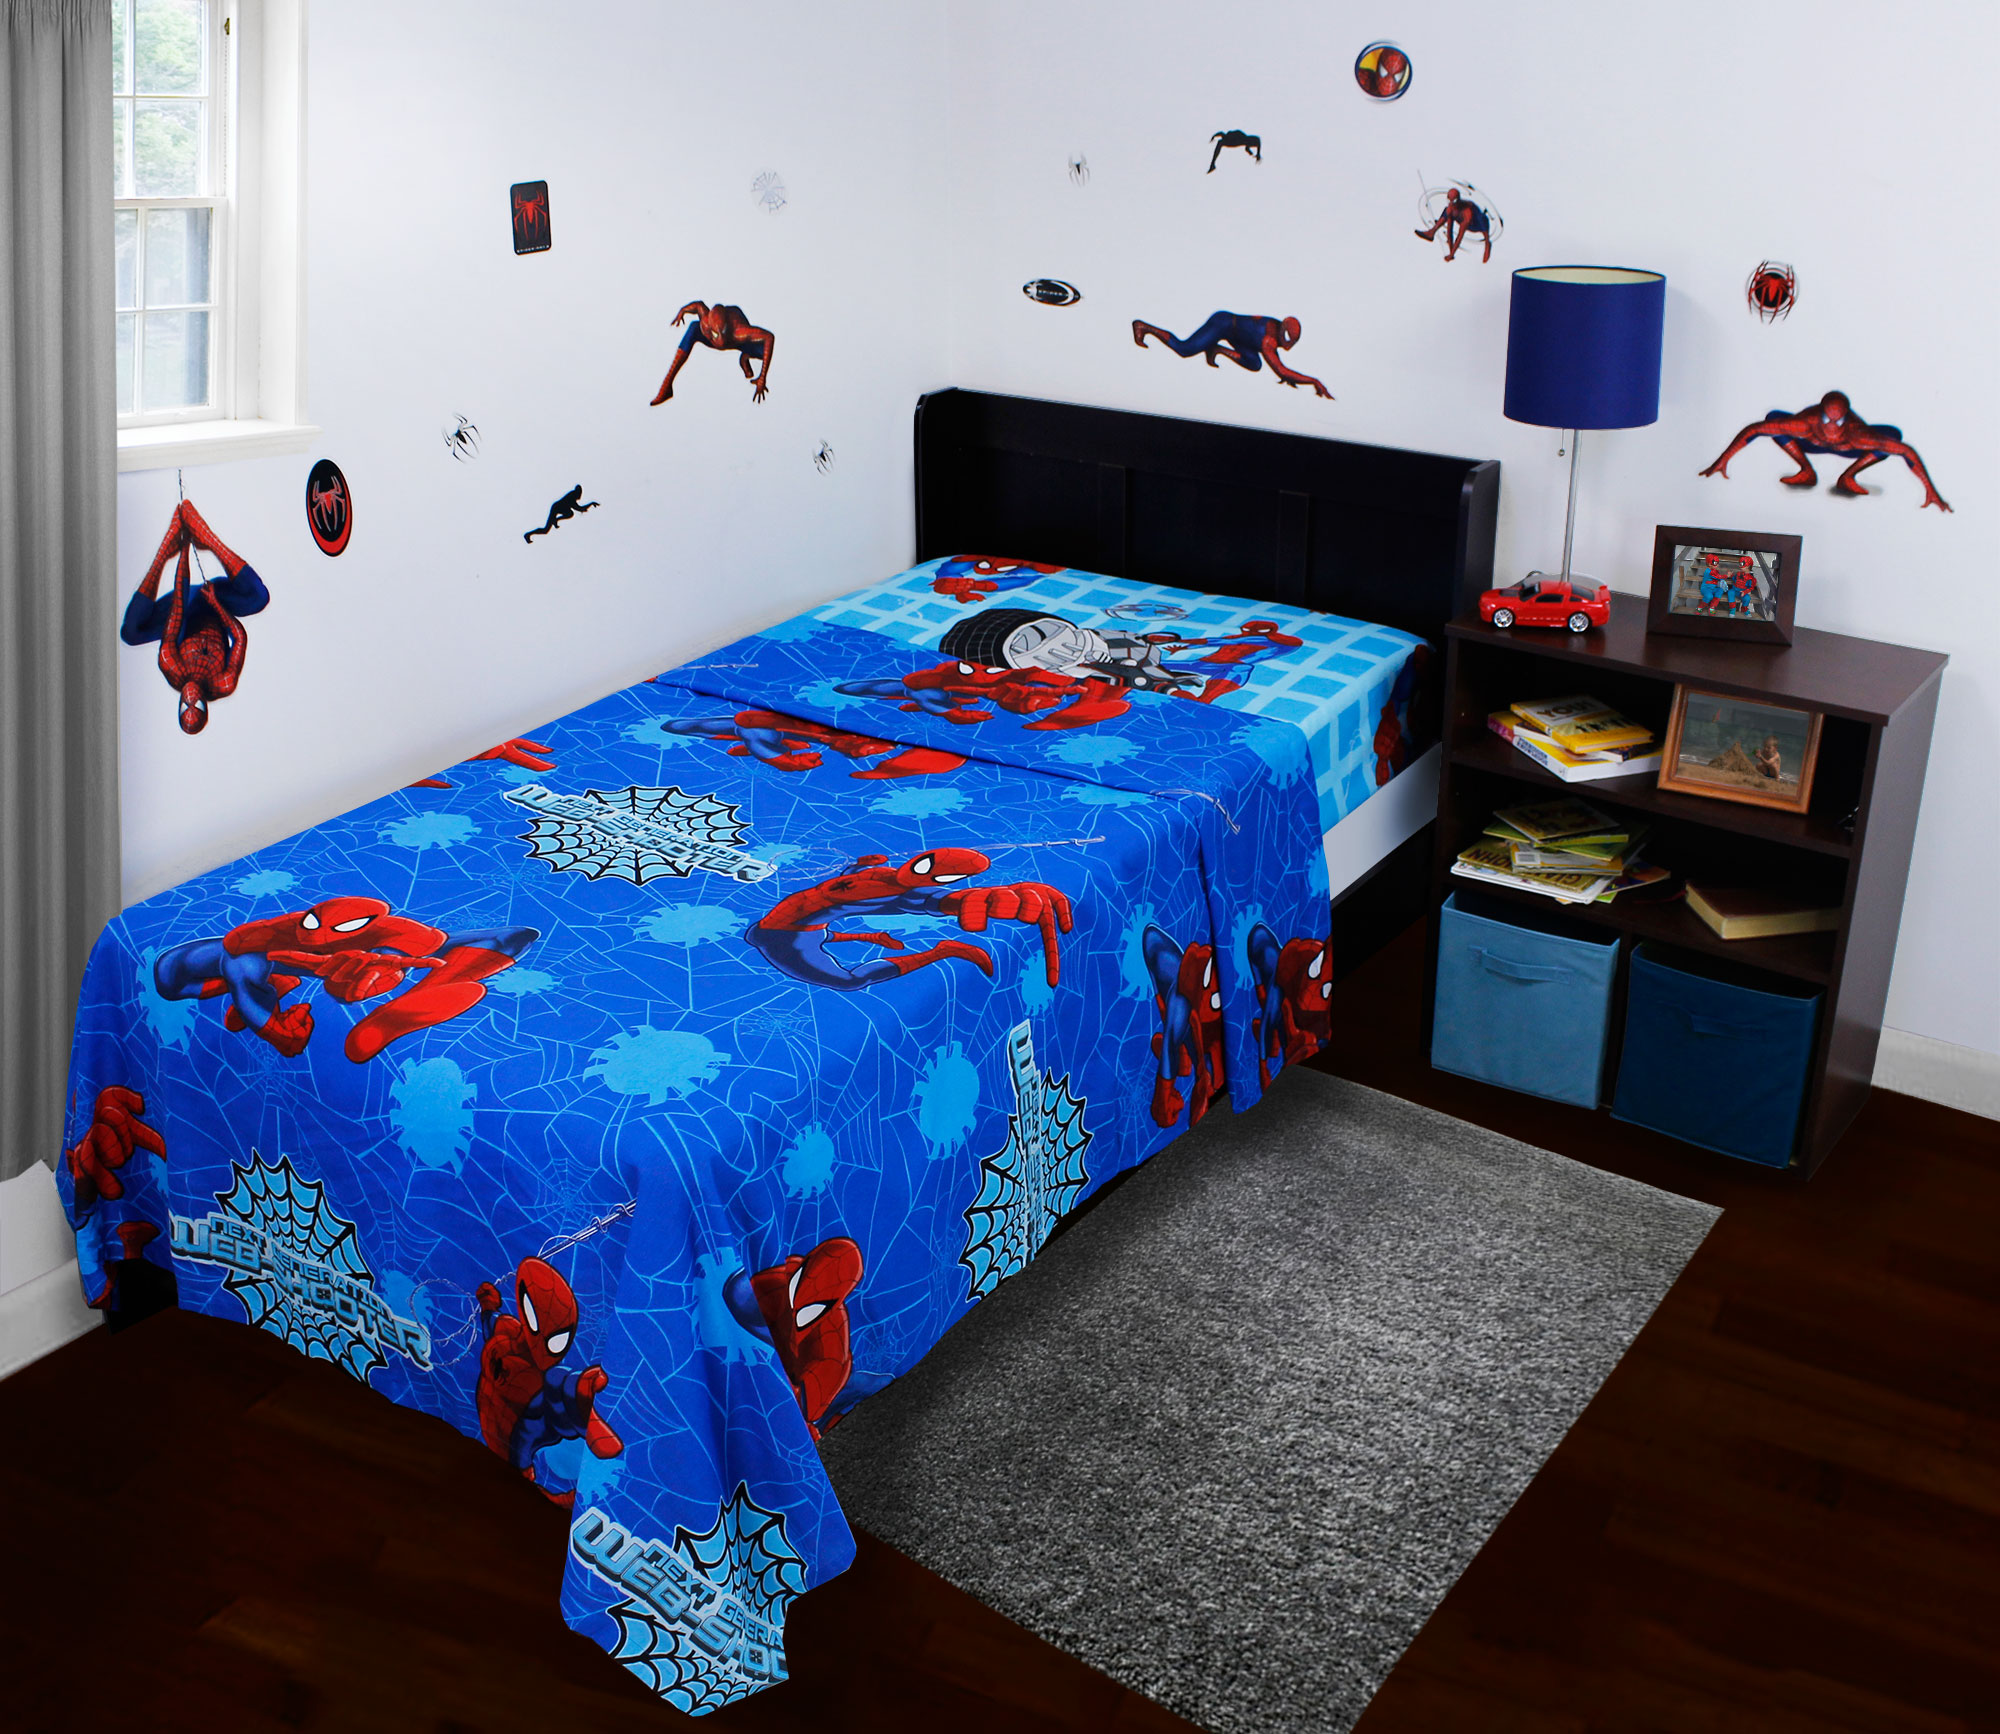 Spider-Man Twin Sheets and Sticker Set - 26pc Superhero Bedding and Decals